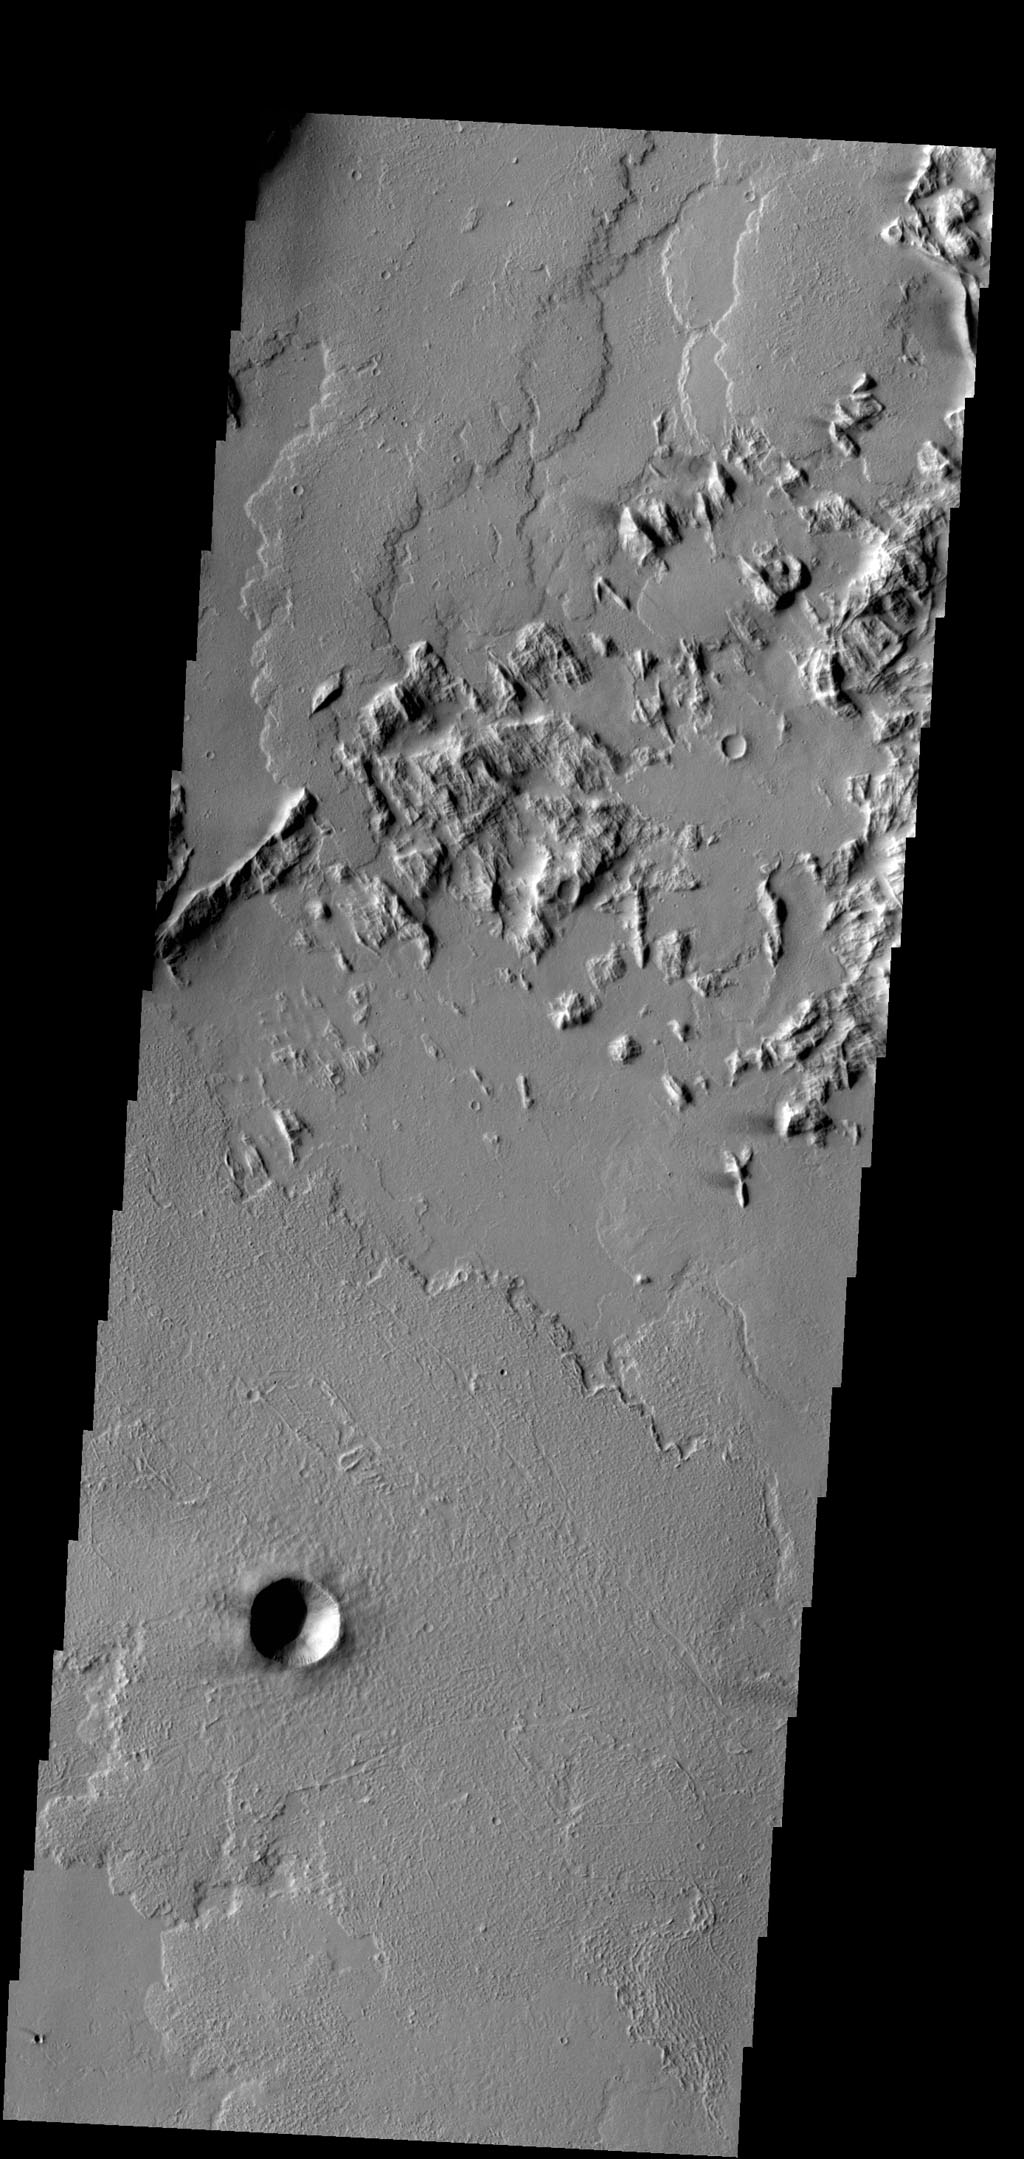 This image captured by NASA's 2001 Mars Odyssey spacecraft is located southwest of Olympus Mons, shows the end of a lava flow that has flowed between the hills at the upper left portion of the image.